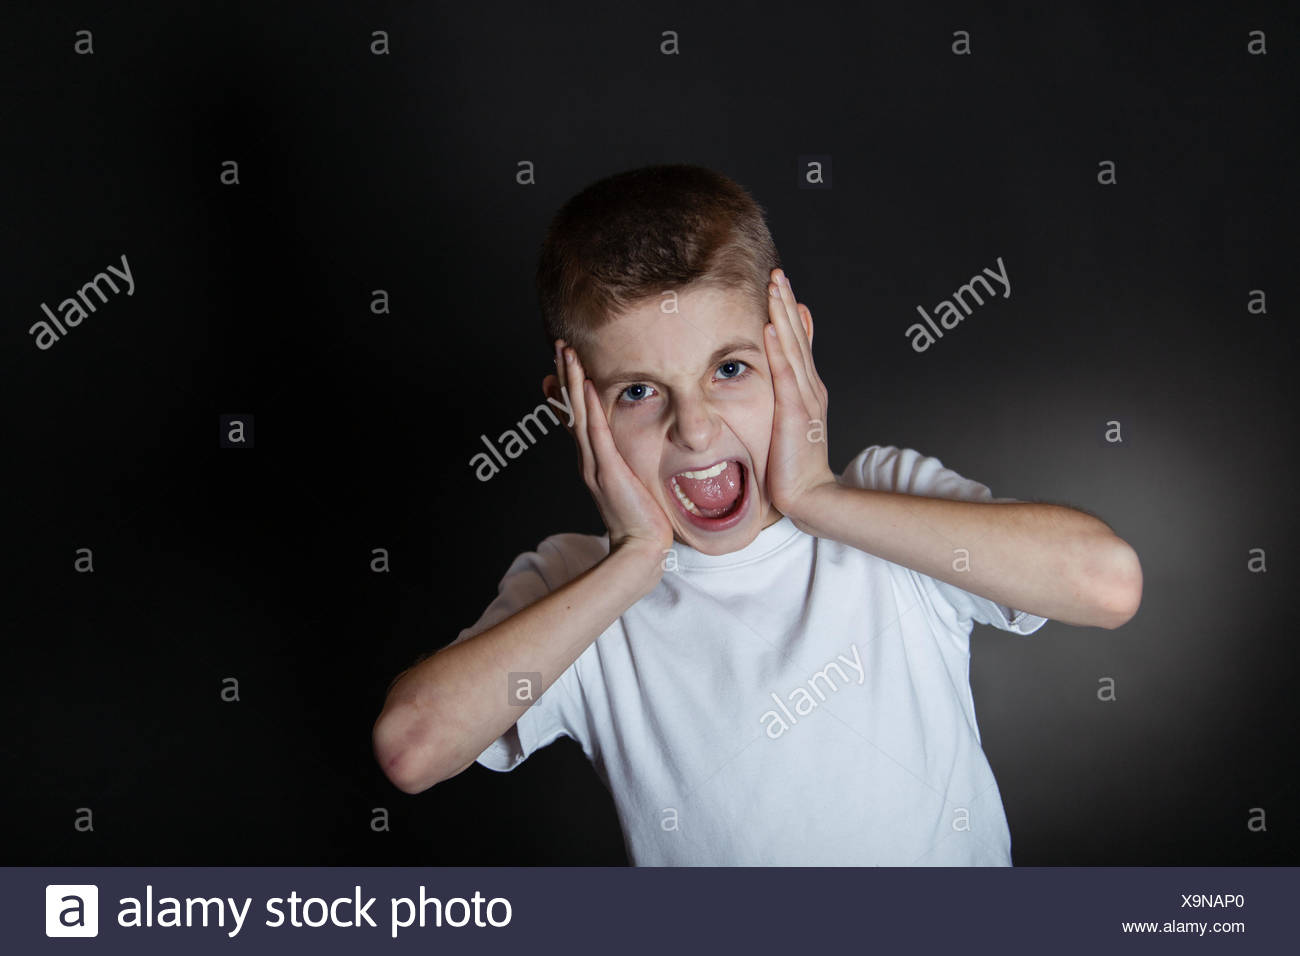 Angry Boy Shouting with Hands Holding on his Face - Stock Image